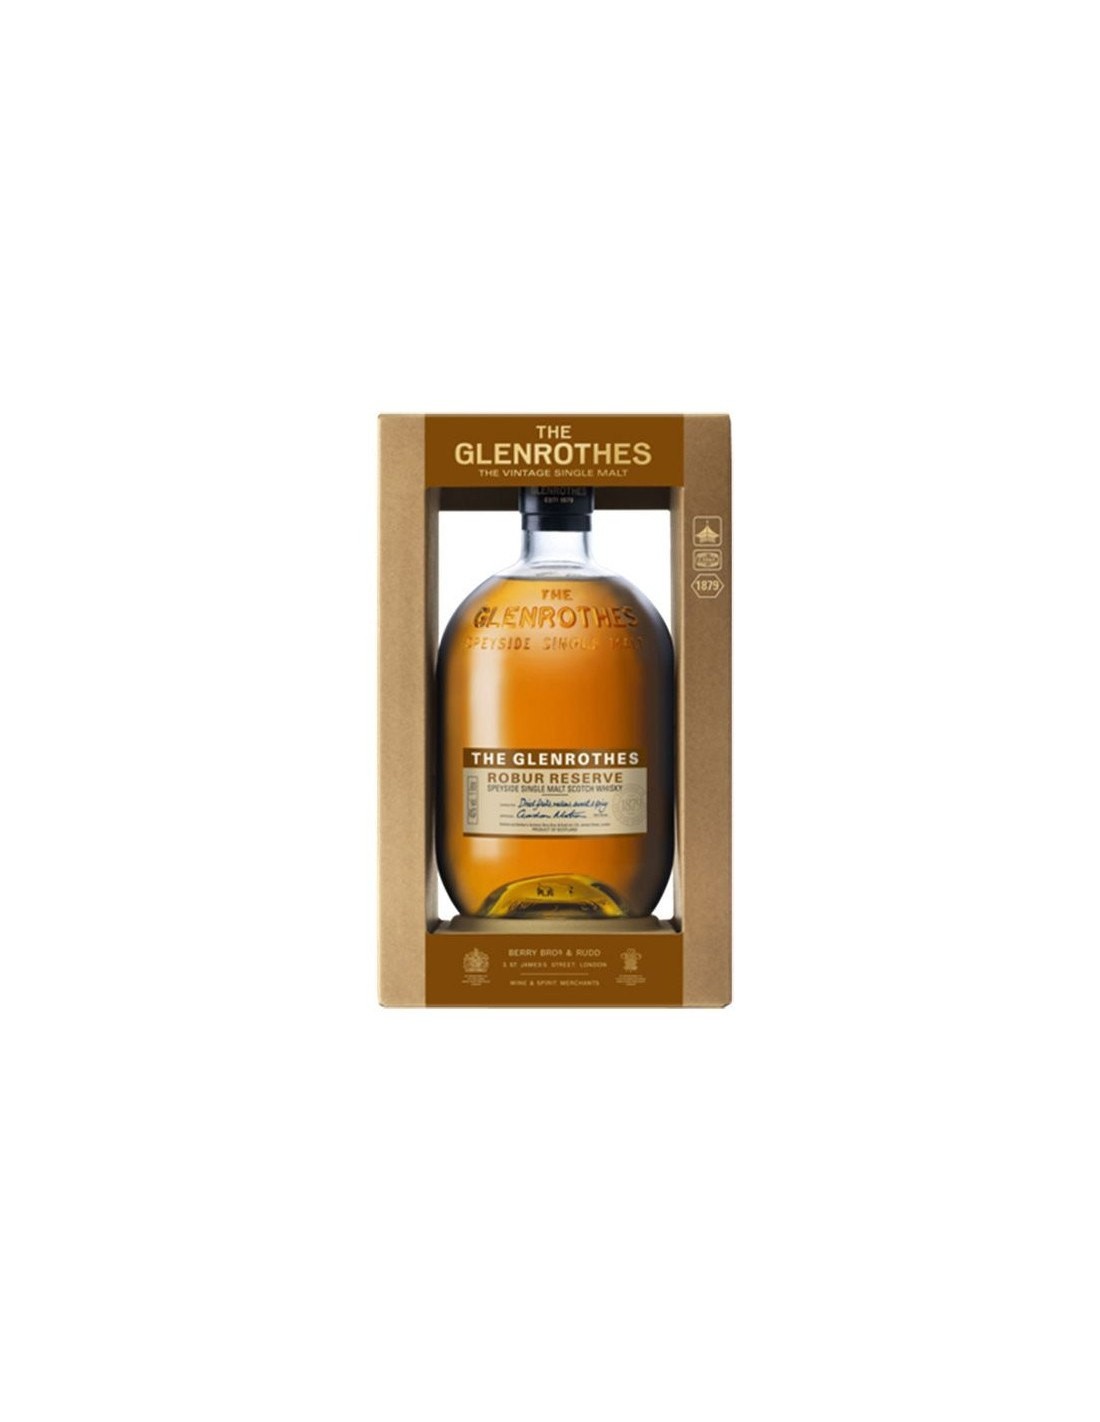 Whisky Glenrothes Speyside Robur, 40% alc., 1L, Scotia